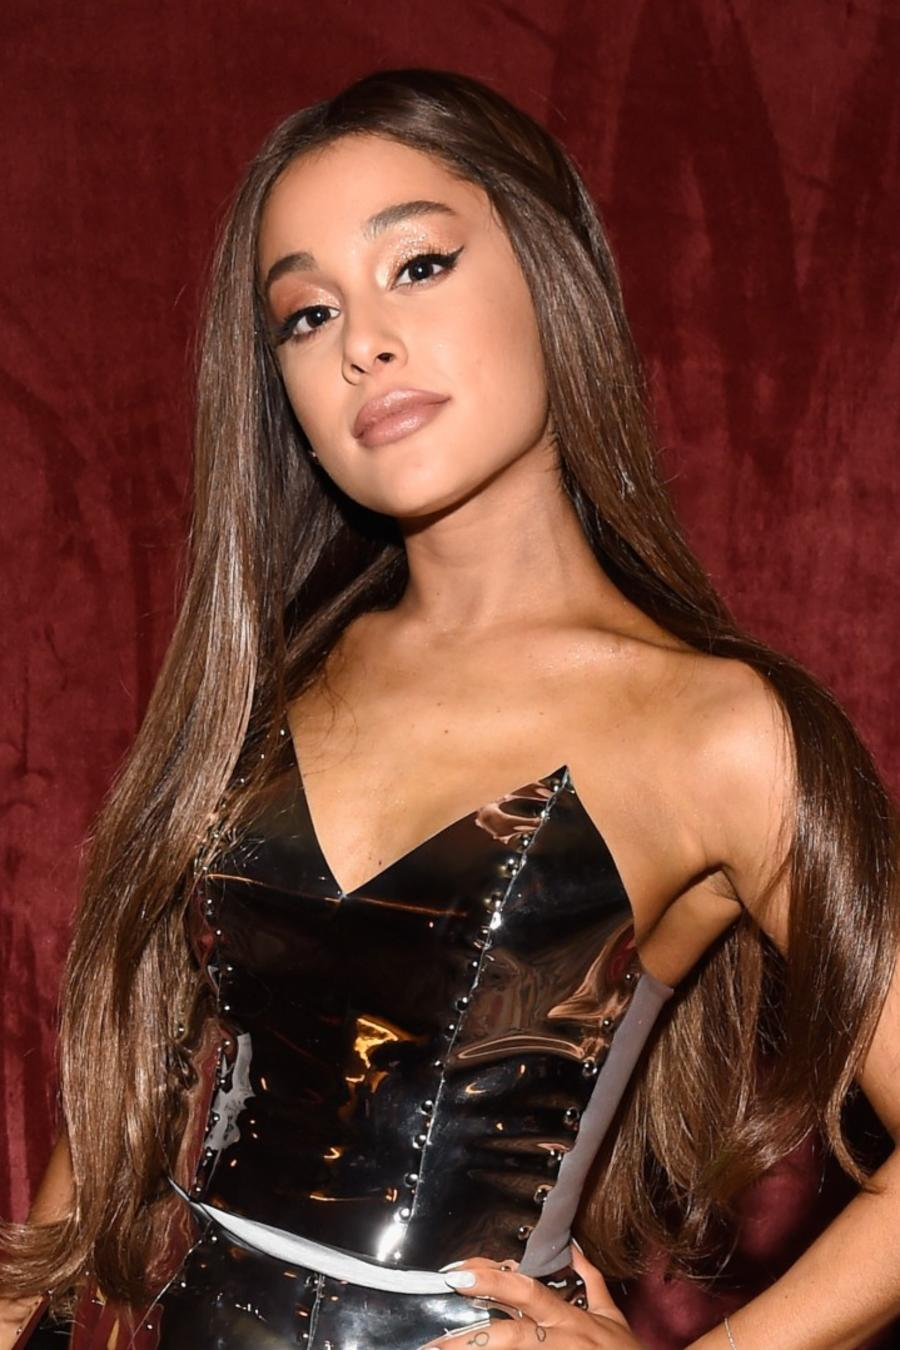 Ariana Grande at MTV awards